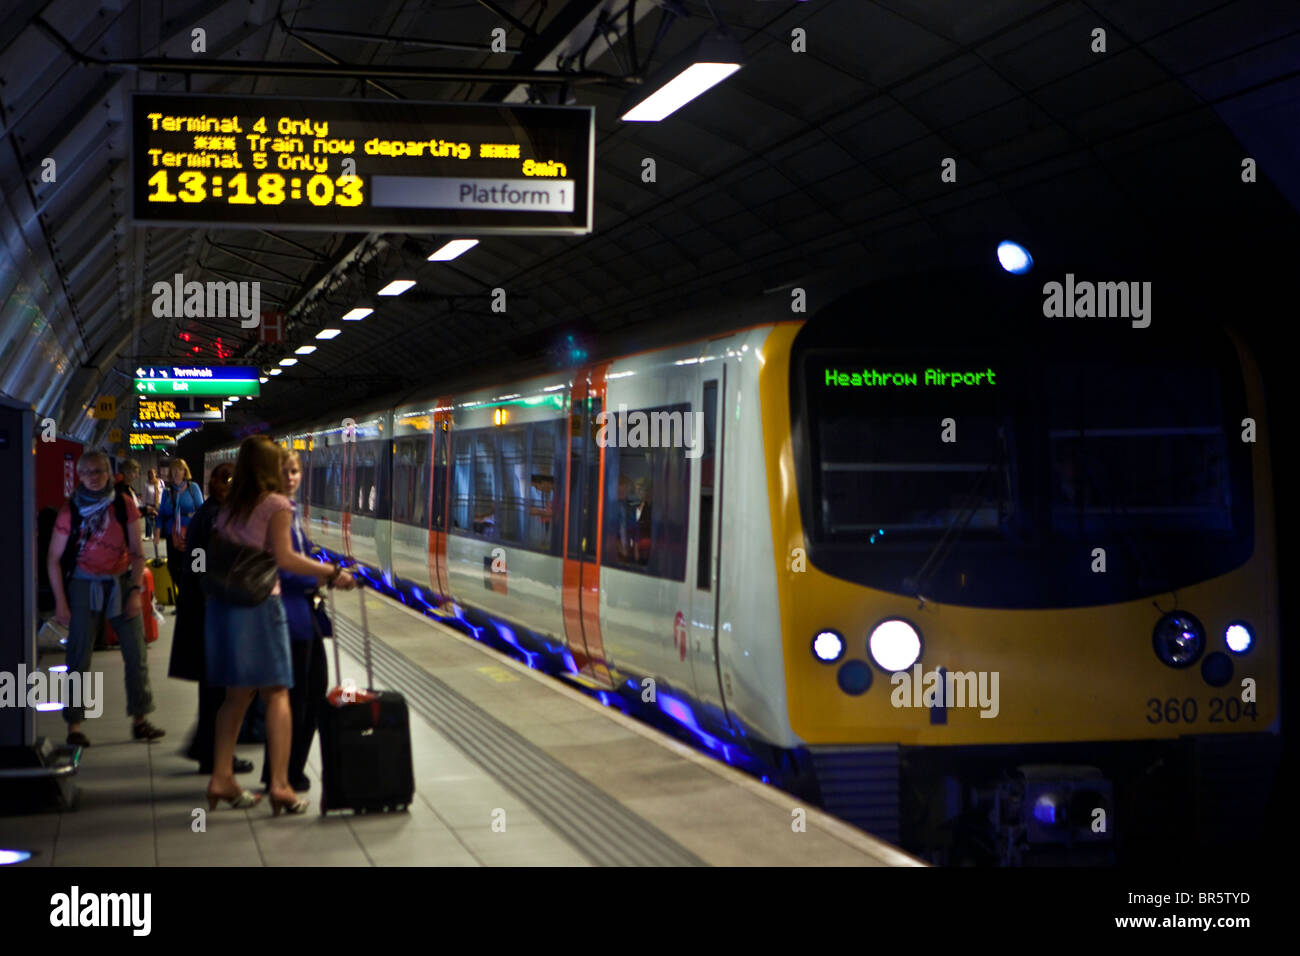 Passengers about to board the Heathrow Express train at London Heathrow Airport's Terminal 5 station. - Stock Image